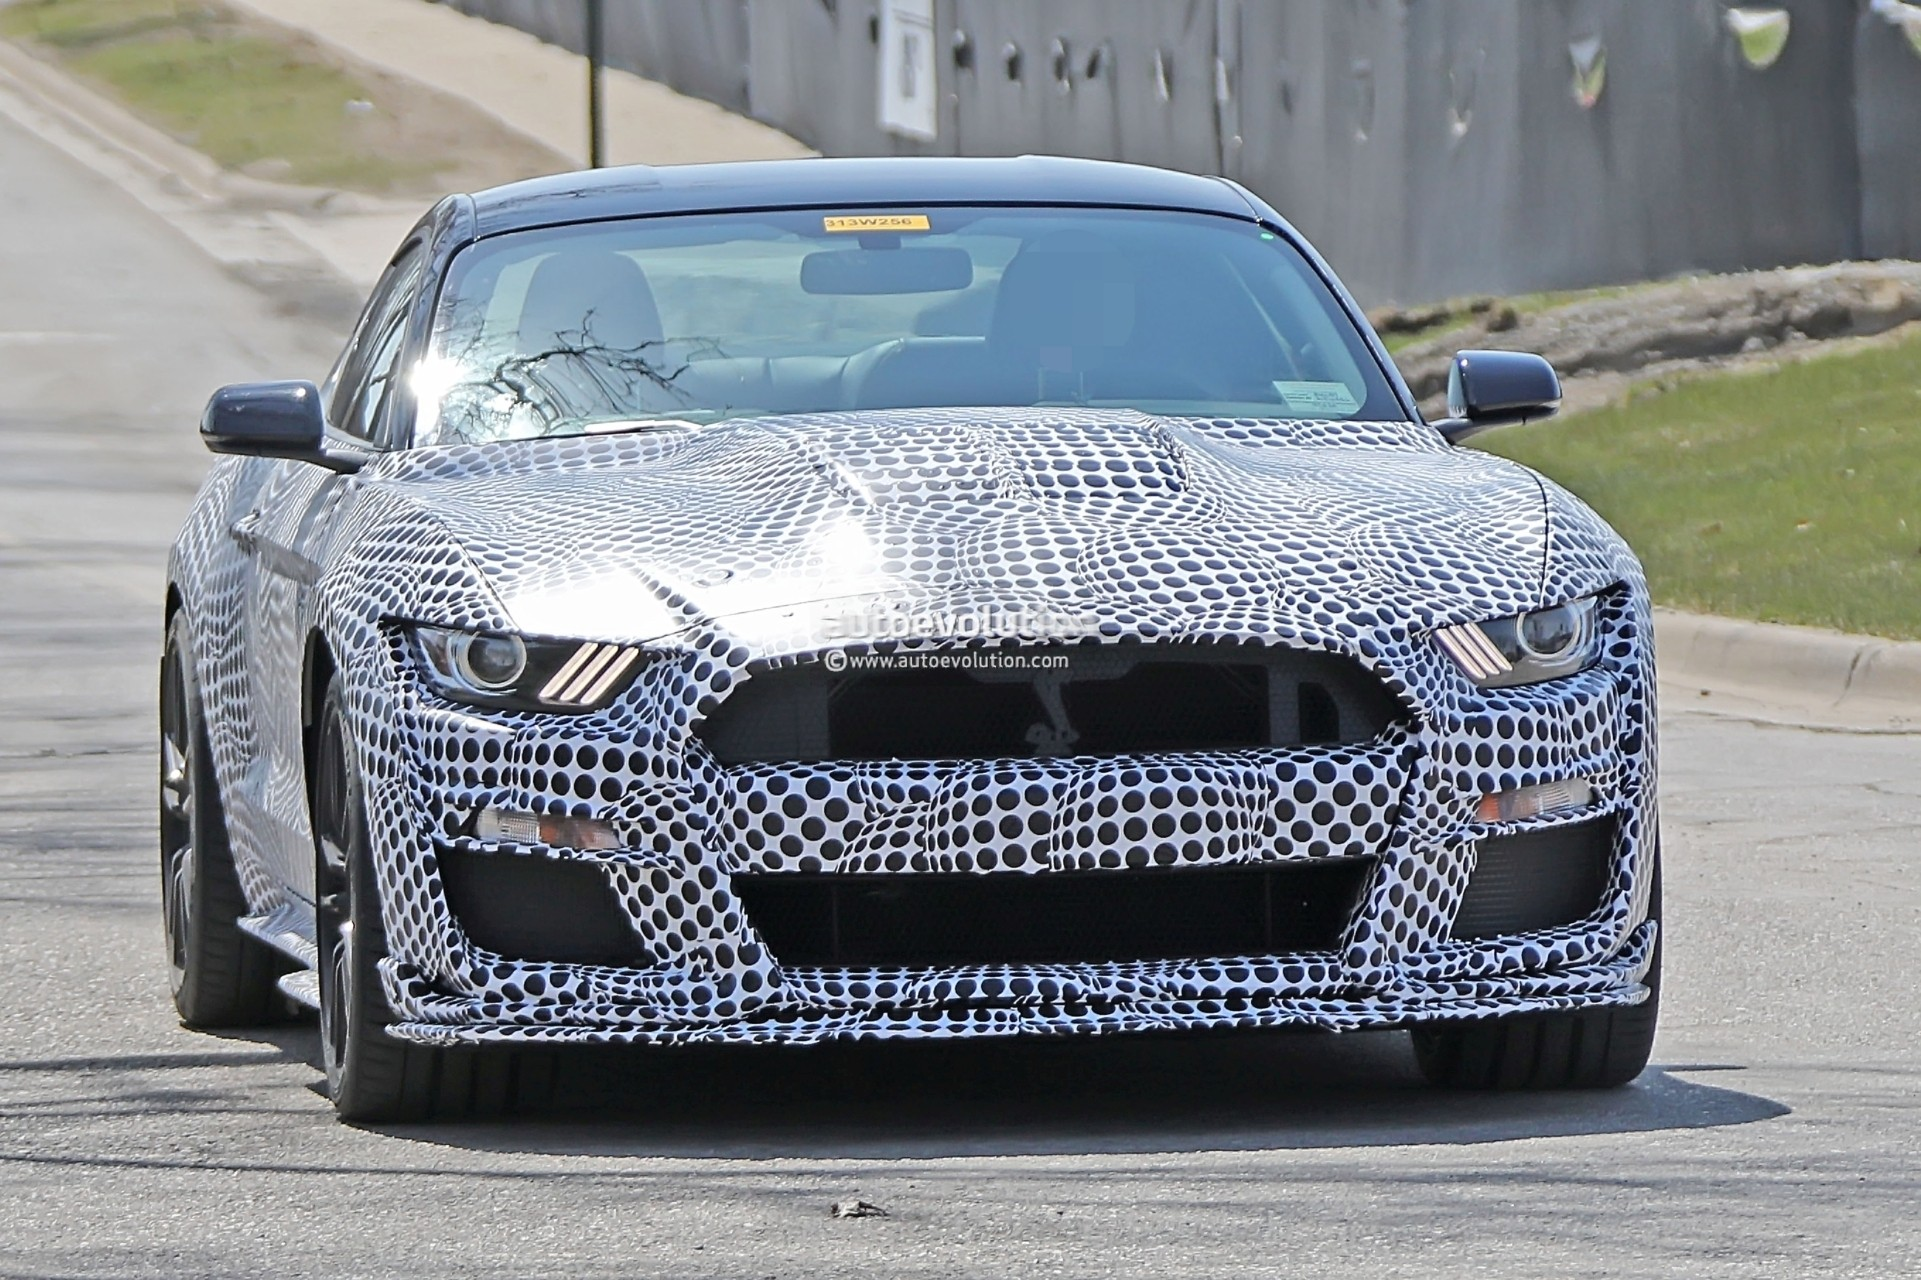 2020 shelby gt500 bird'seye teaser reveals the obvious